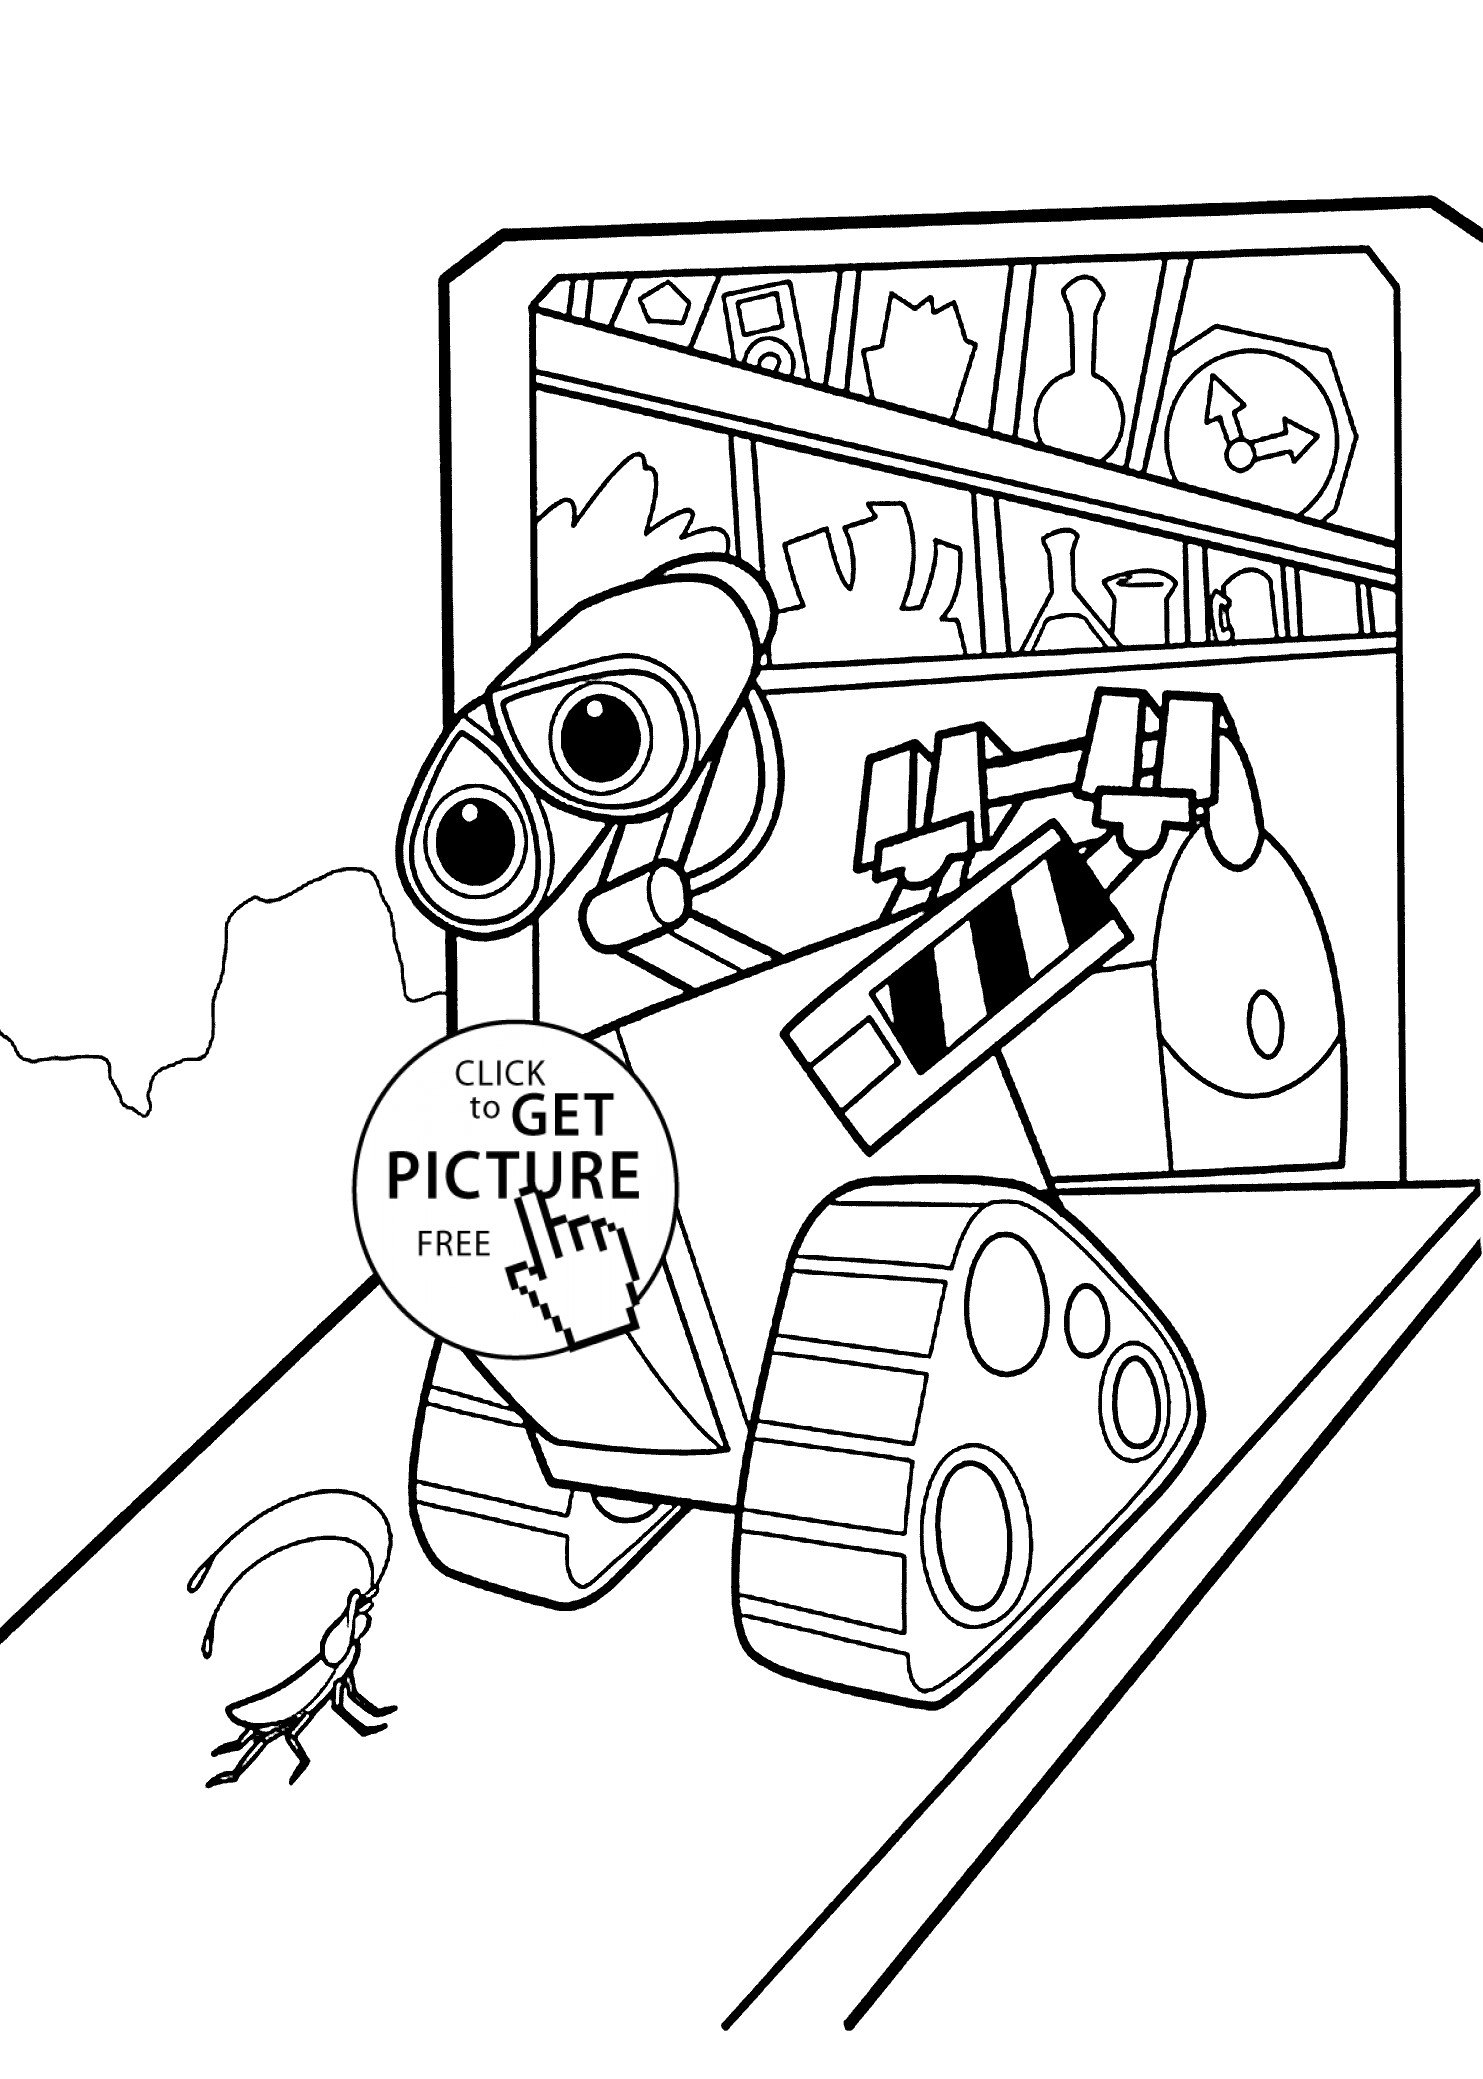 1483x2079 Printable Wall E And Eve Coloring Pages For Kids New Wall E